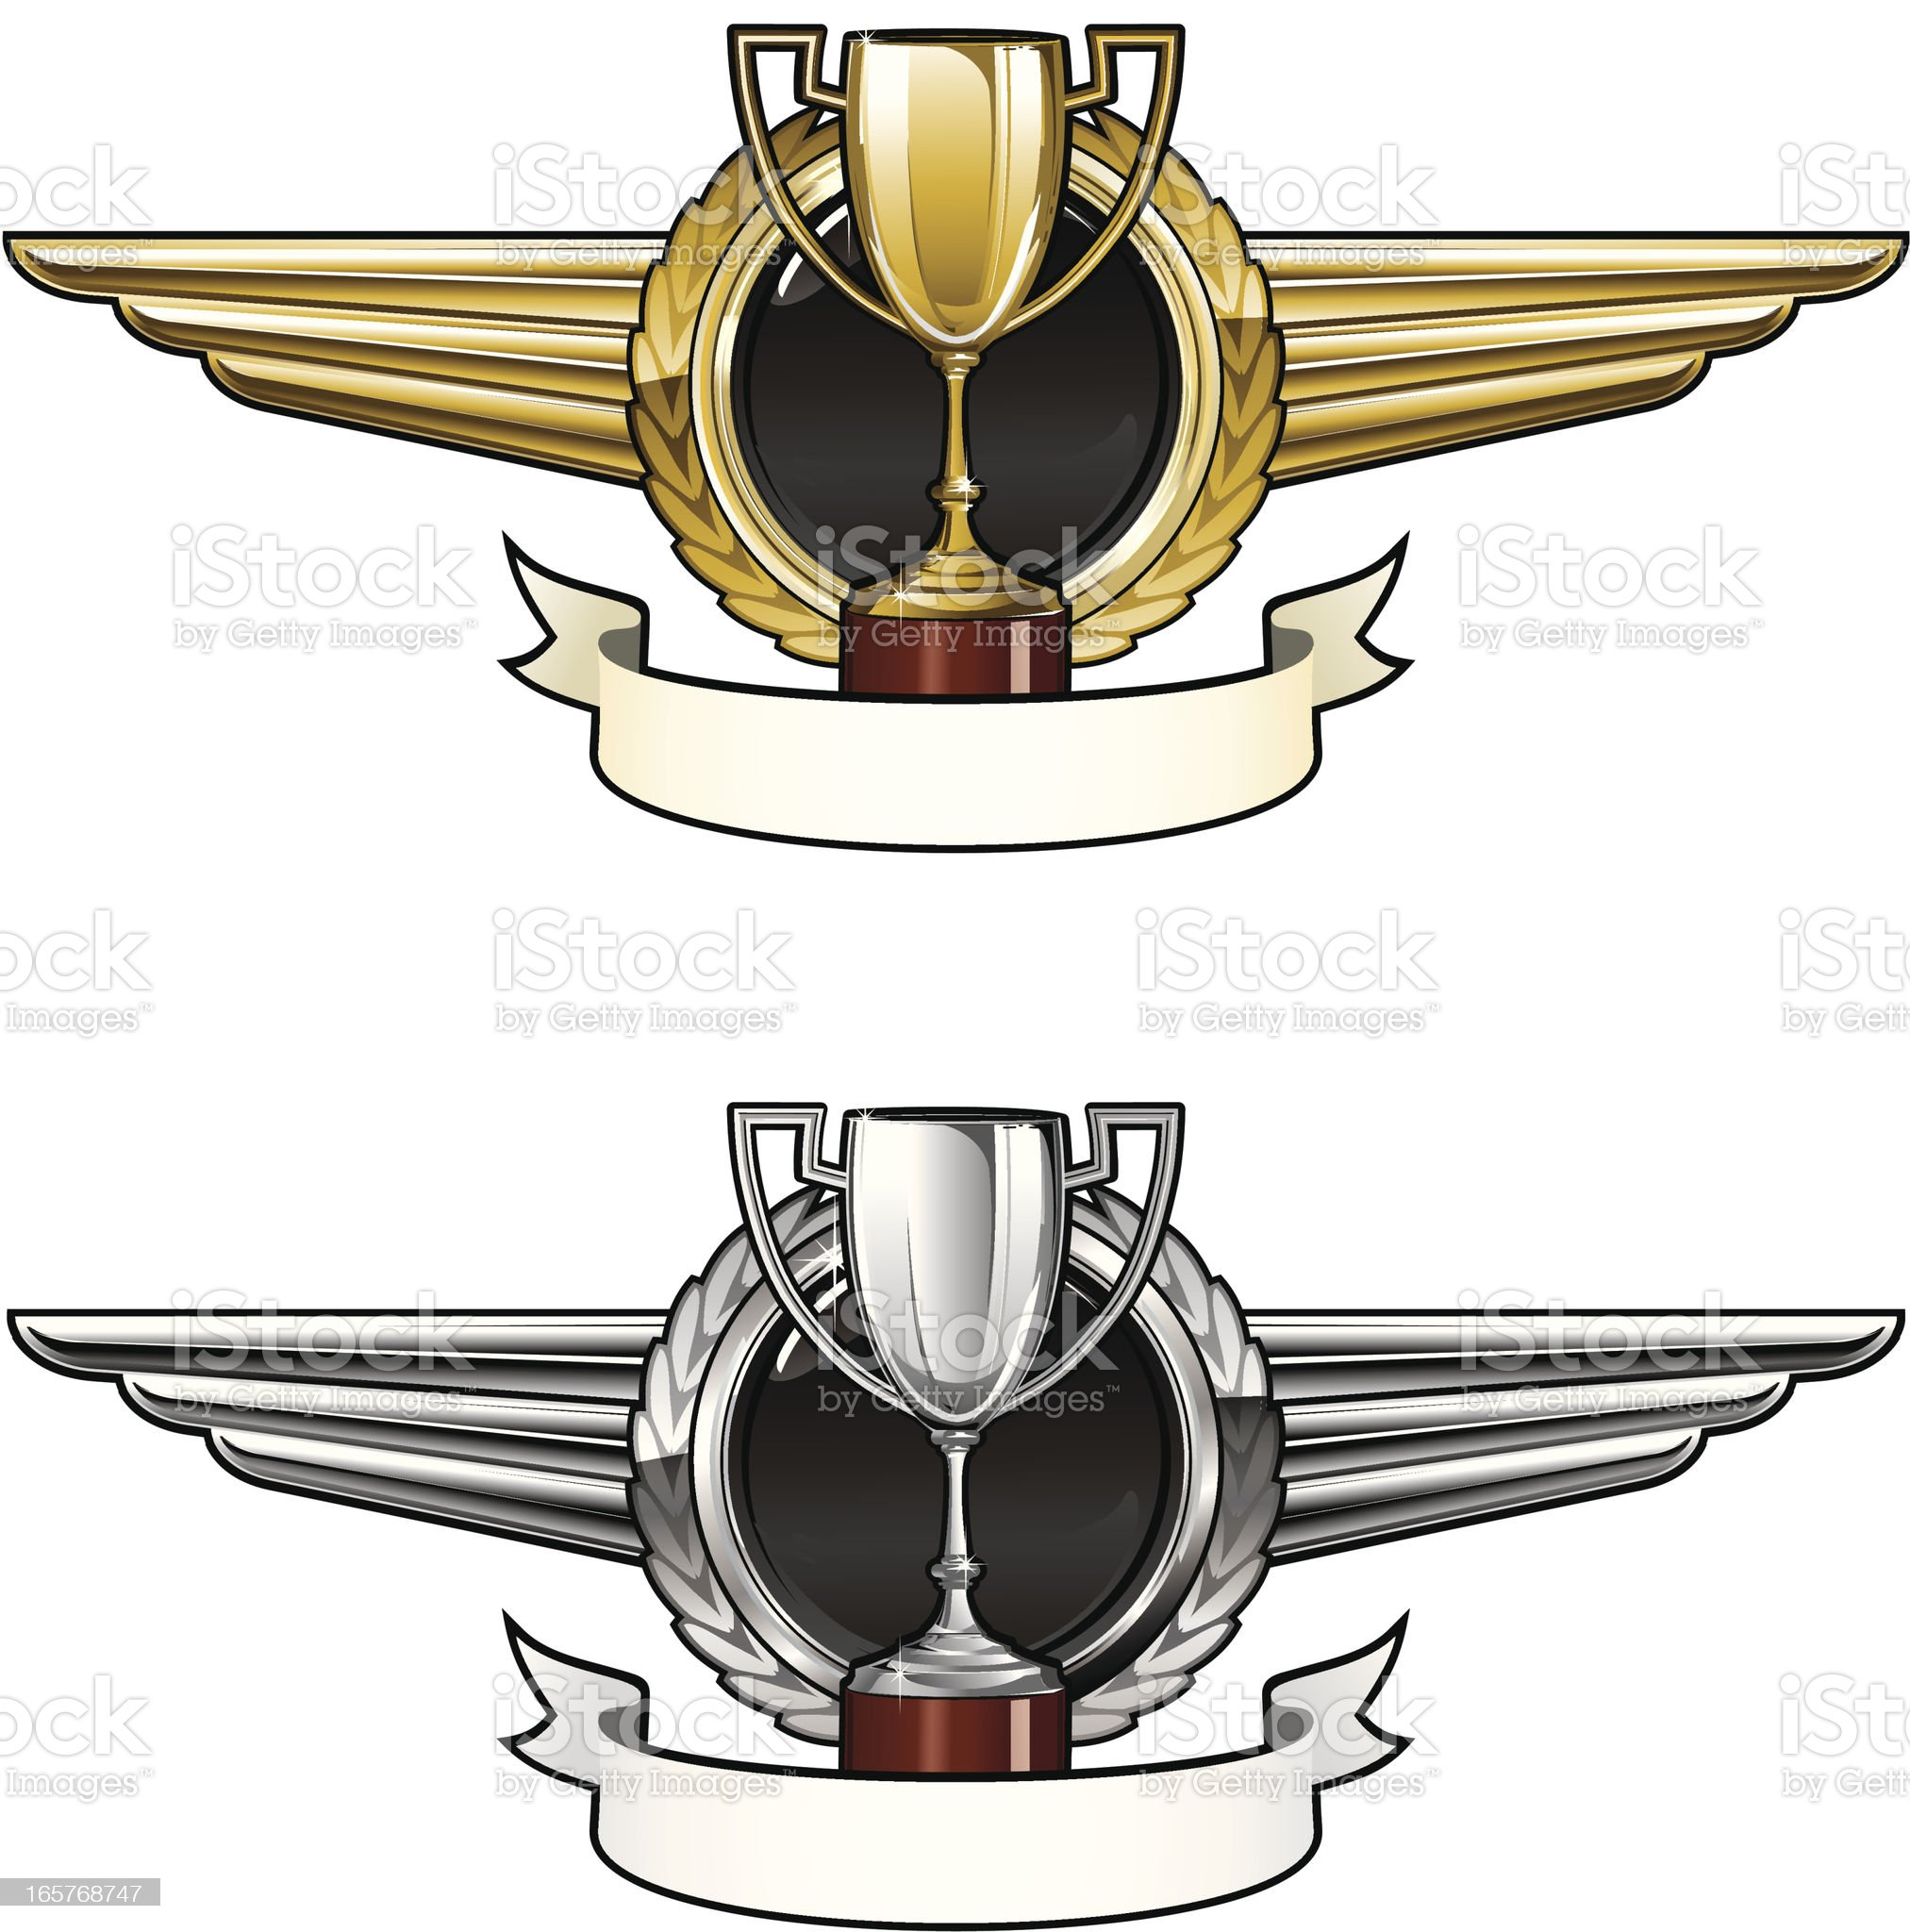 Winged emblems with cup royalty-free stock vector art